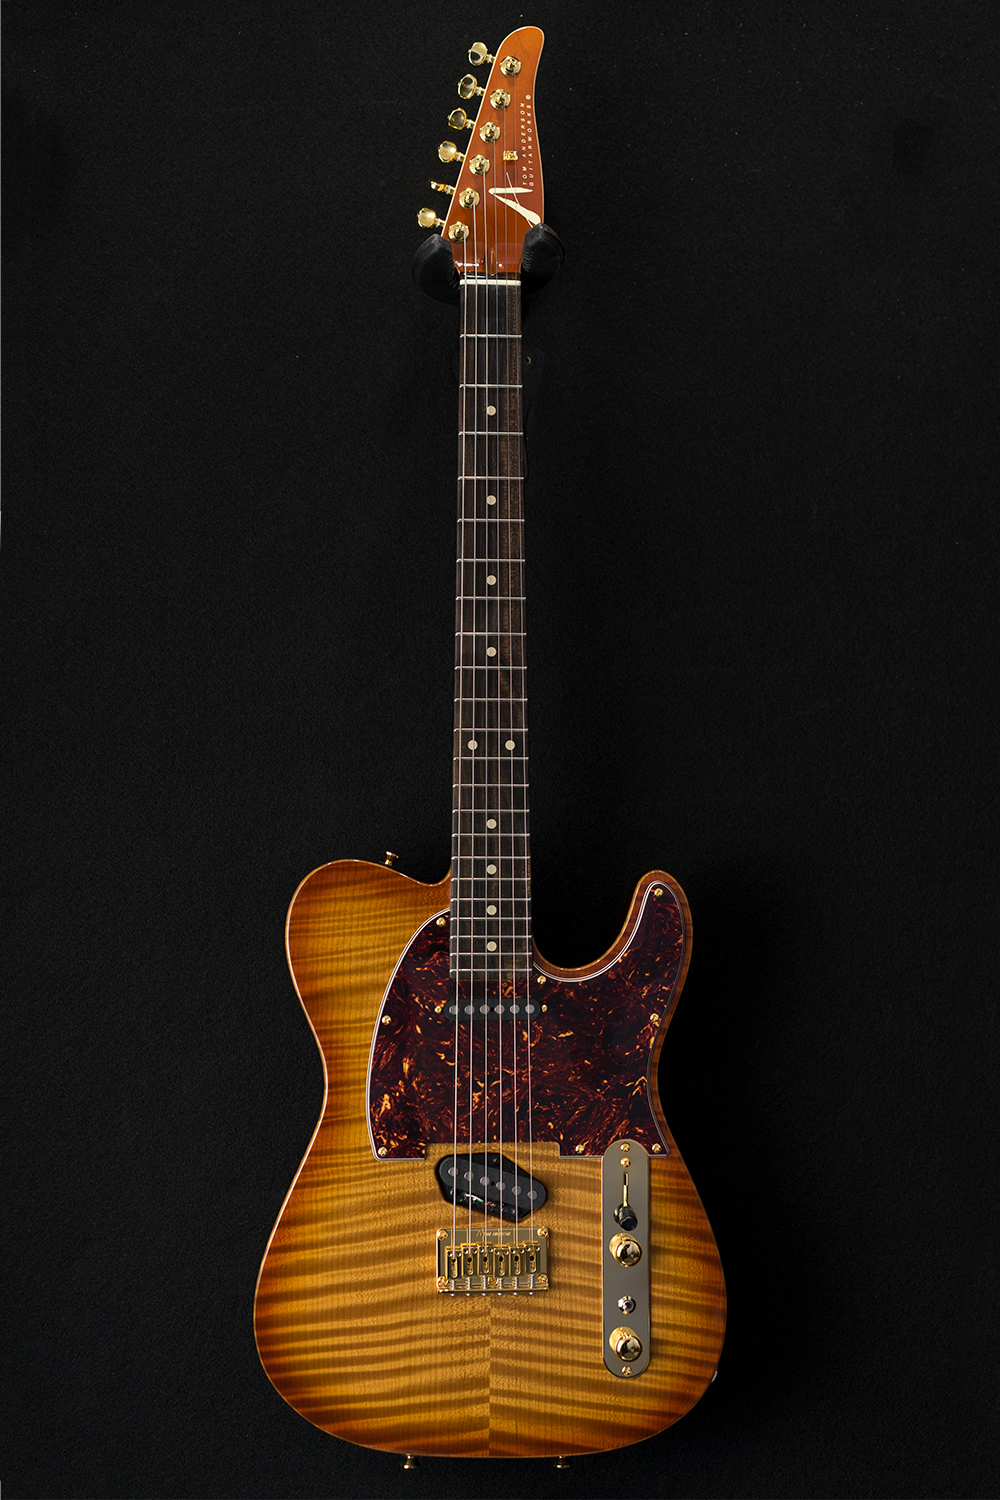 01-15-18A_fup_Top T Classic_Honey Shaded Edge-caramel maple.jpg